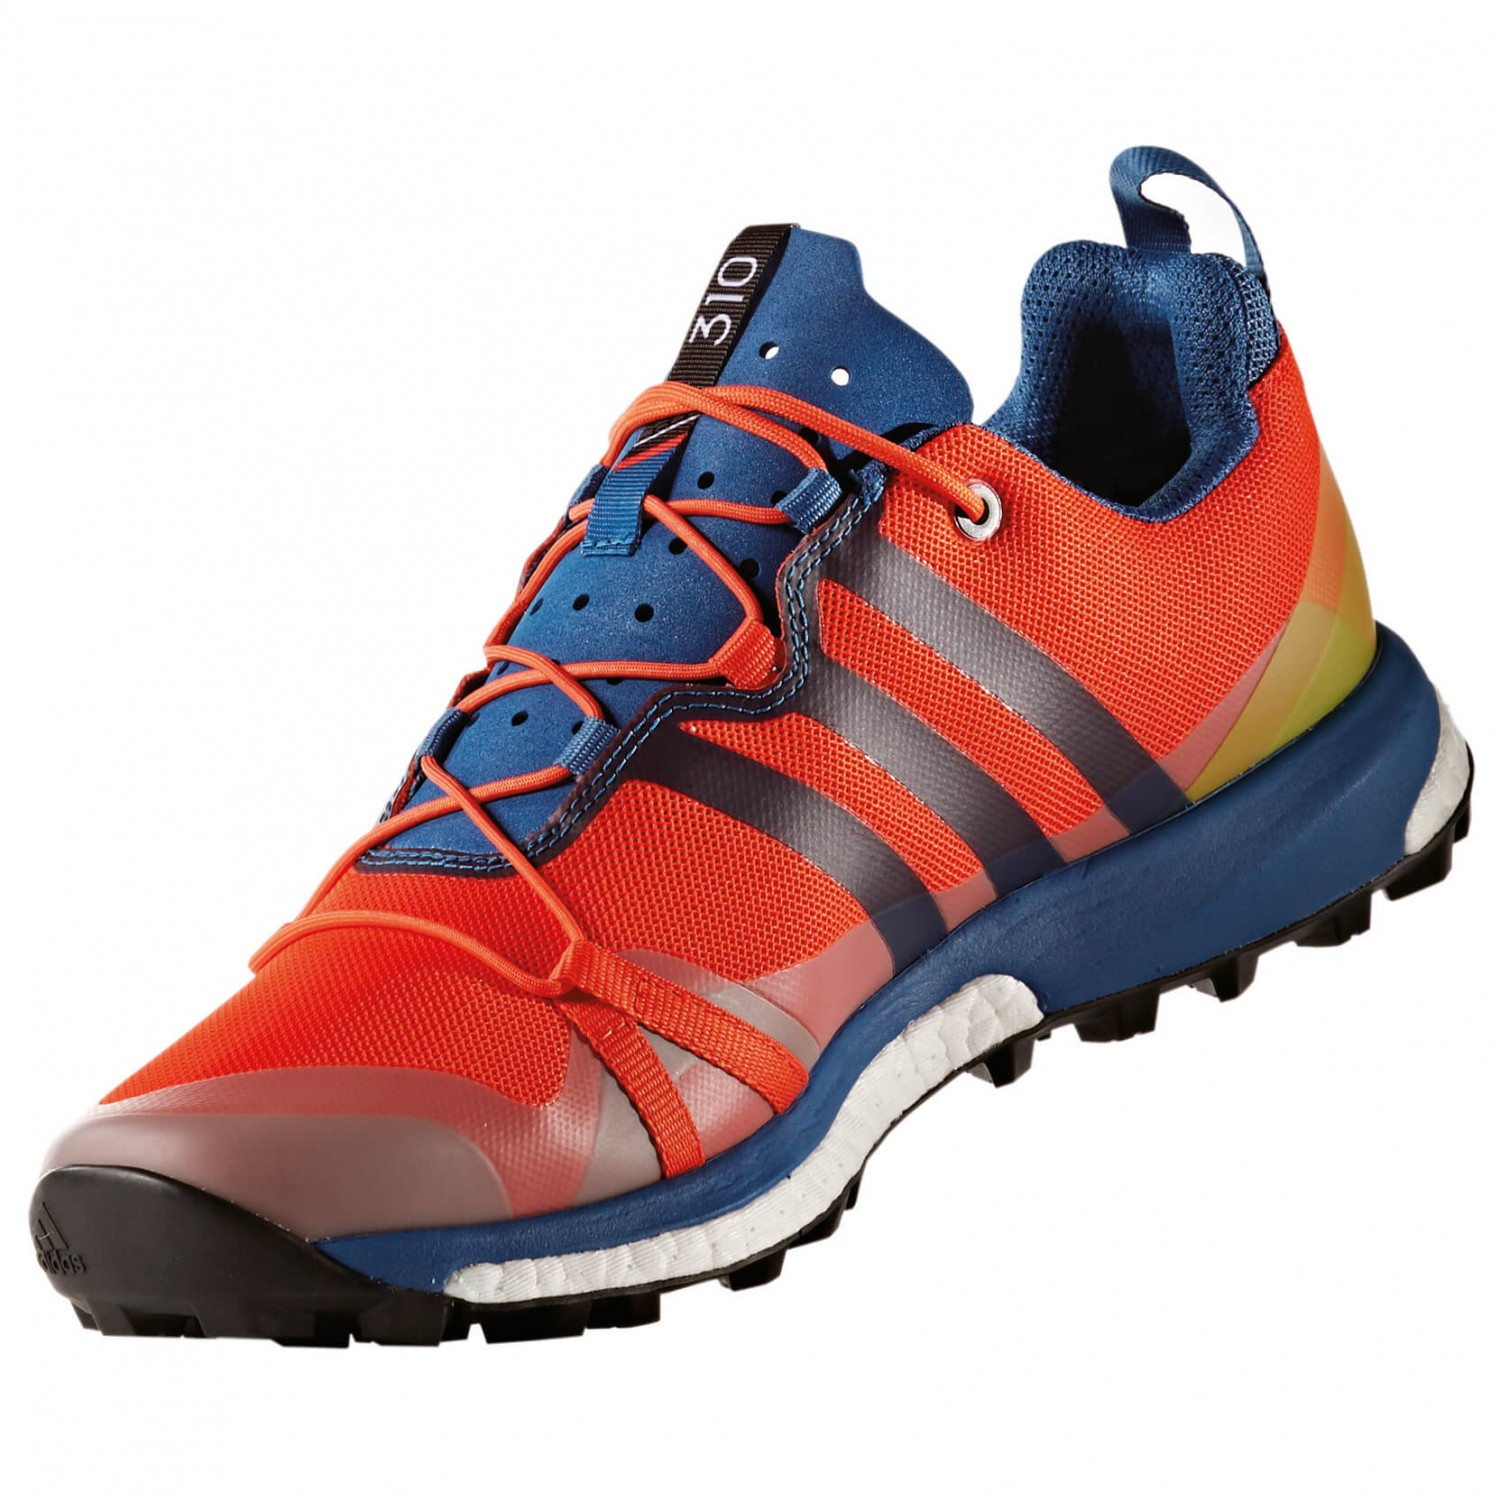 Adidas Terrex Agravic - Trail Running Shoes Men's | Buy